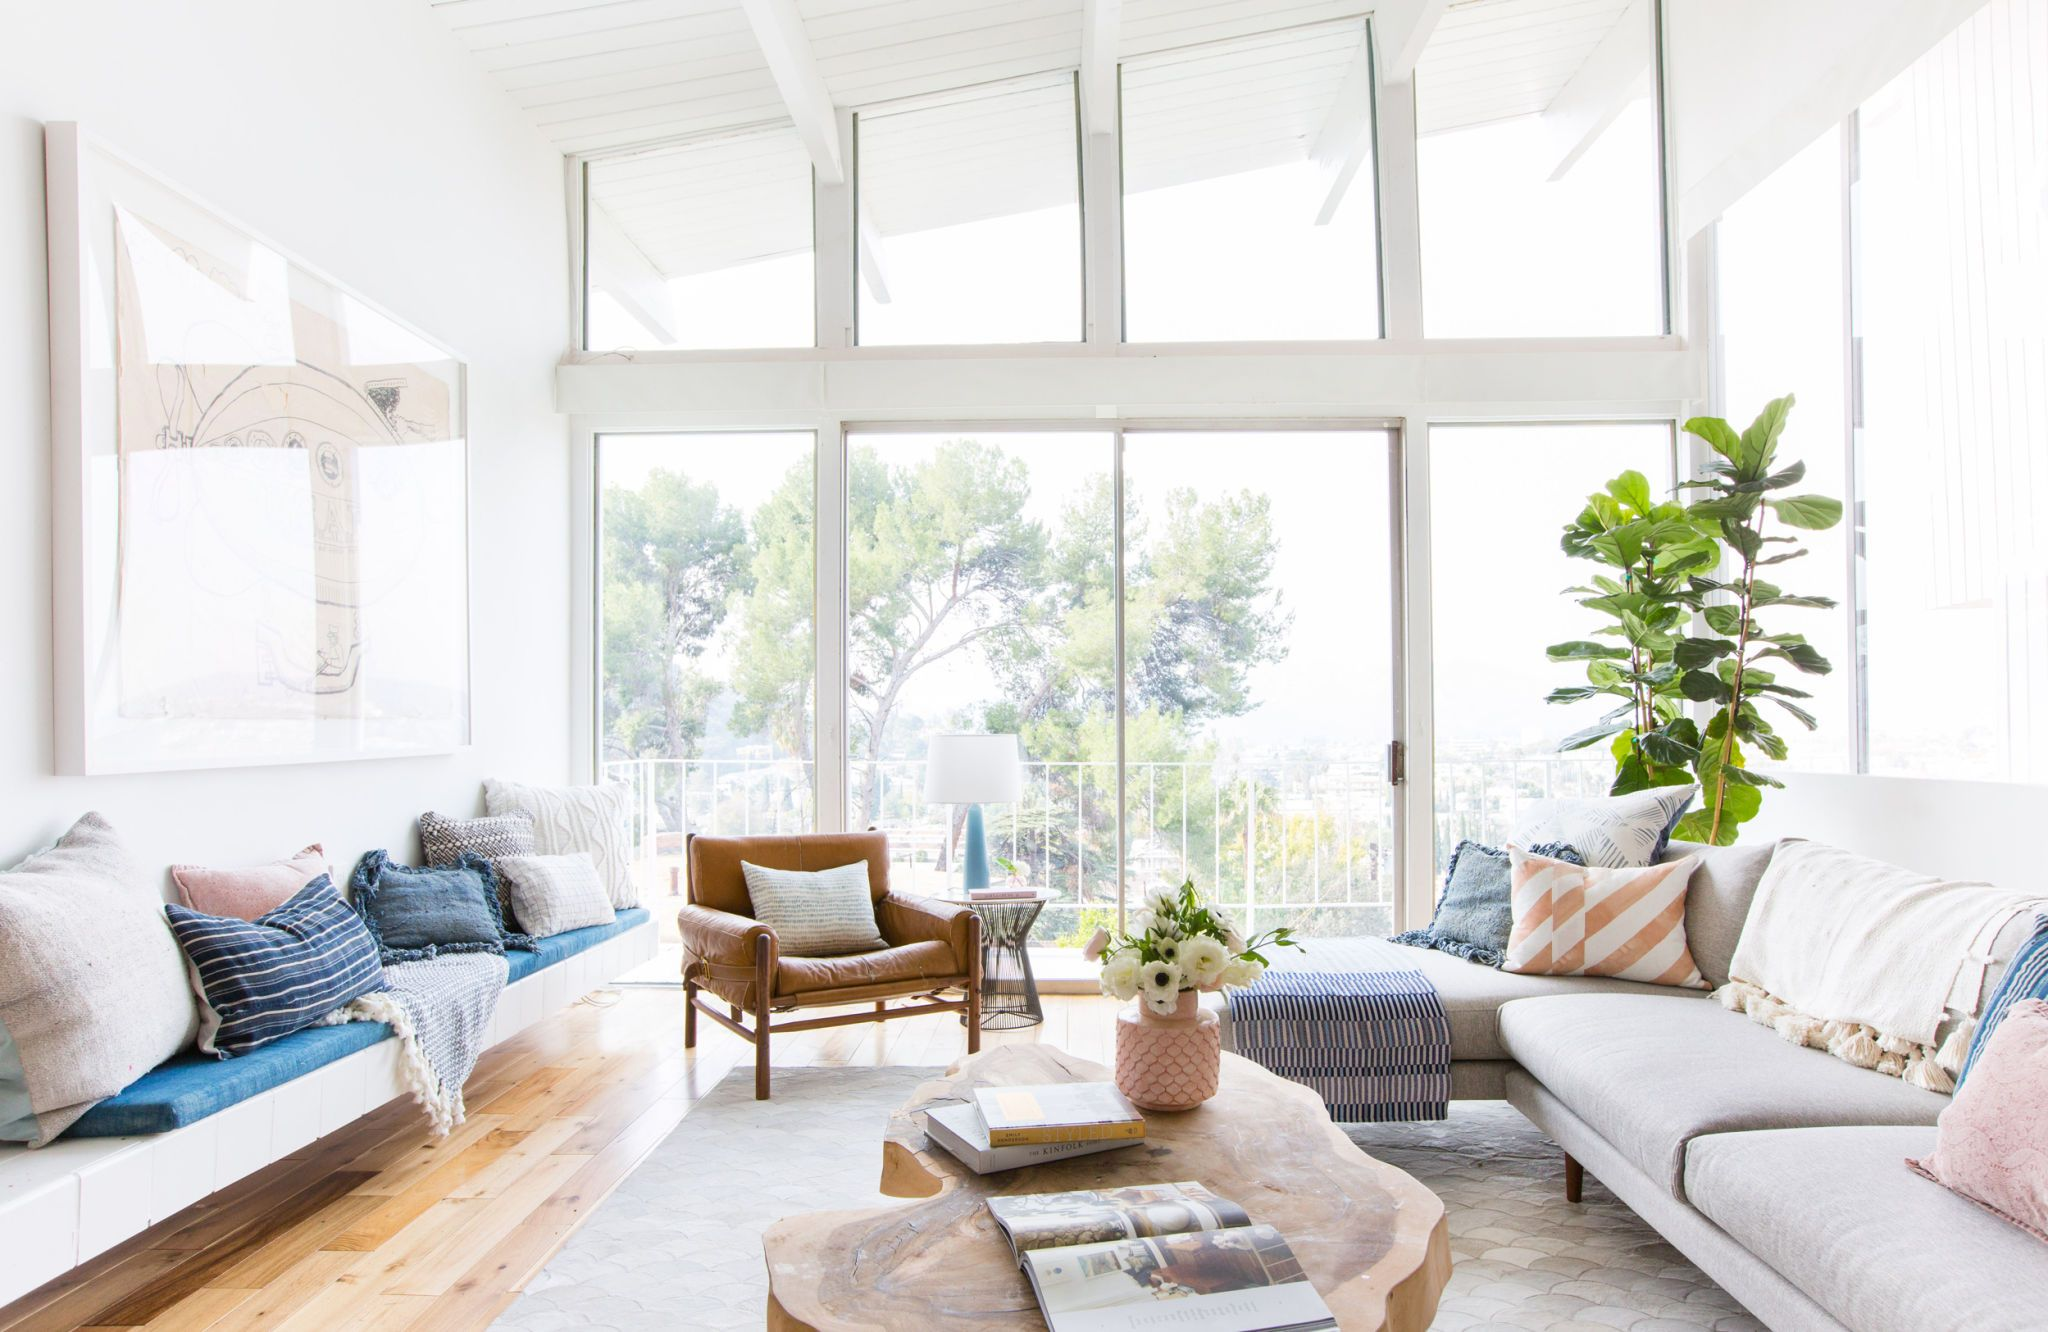 How we styled our living room to sell | Living rooms, Mid century ...